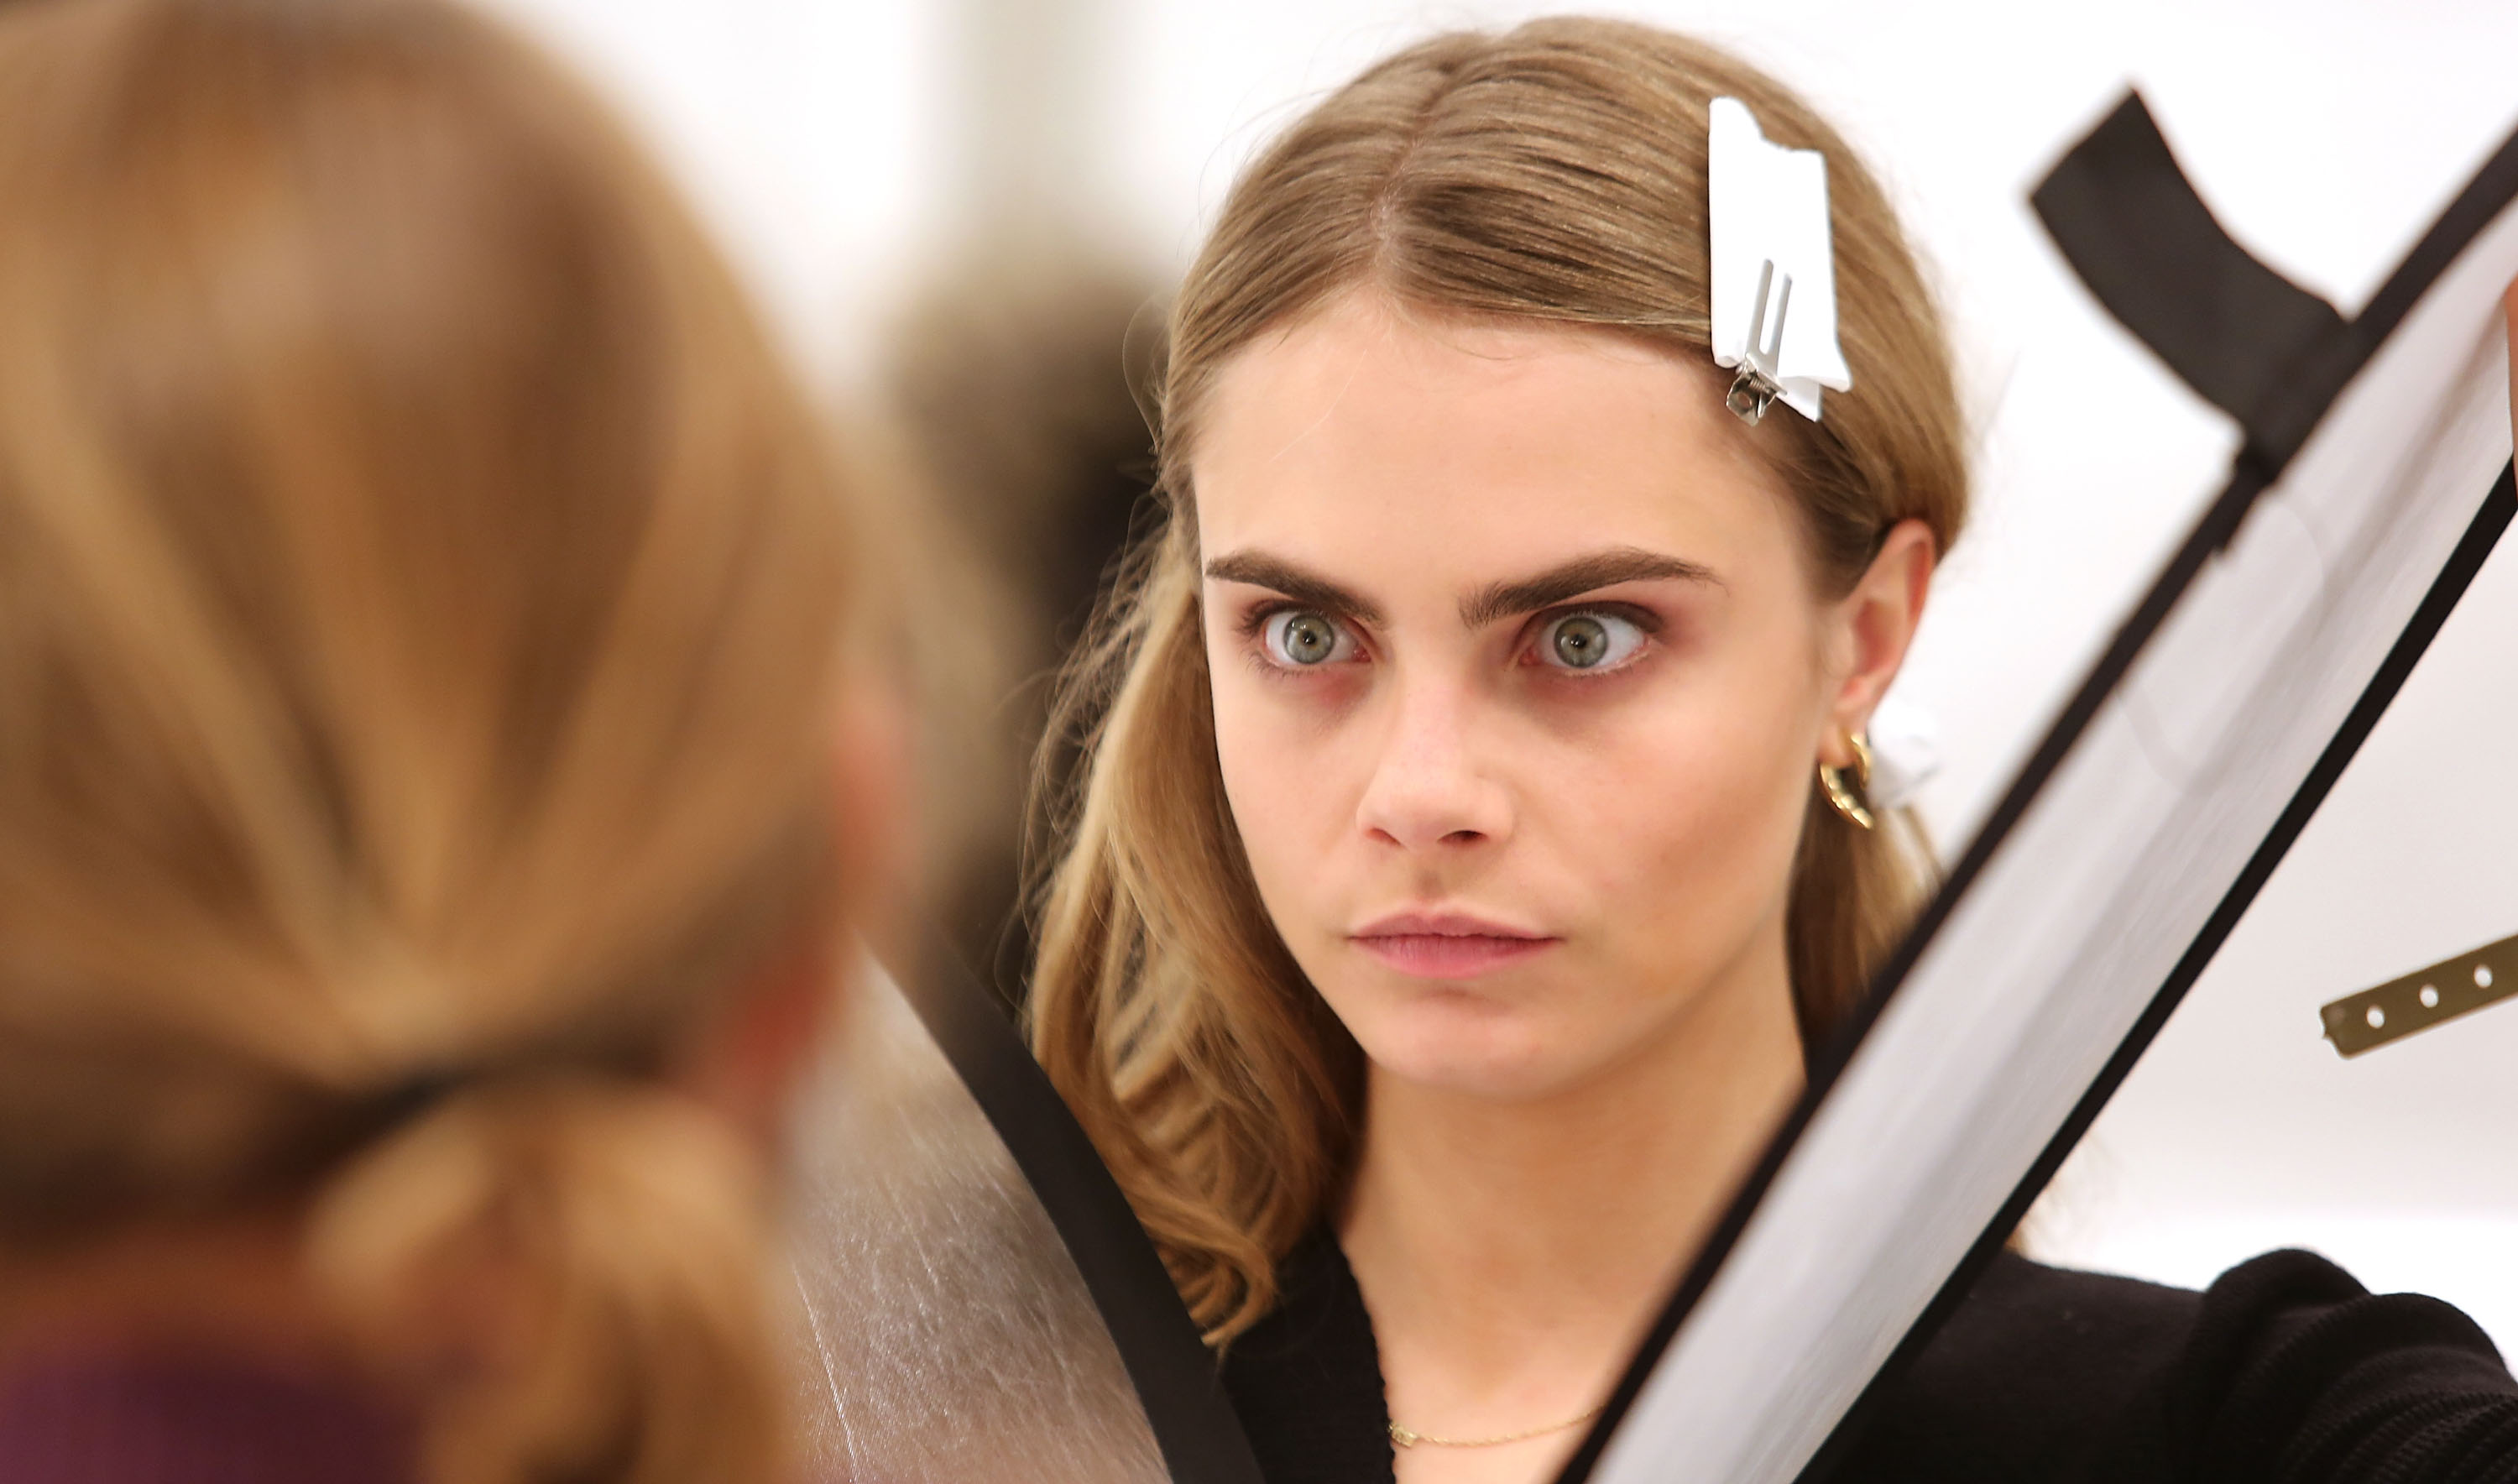 Eyebrow Transplants Are A Thing But Are Cara Delevingne Esque Brows